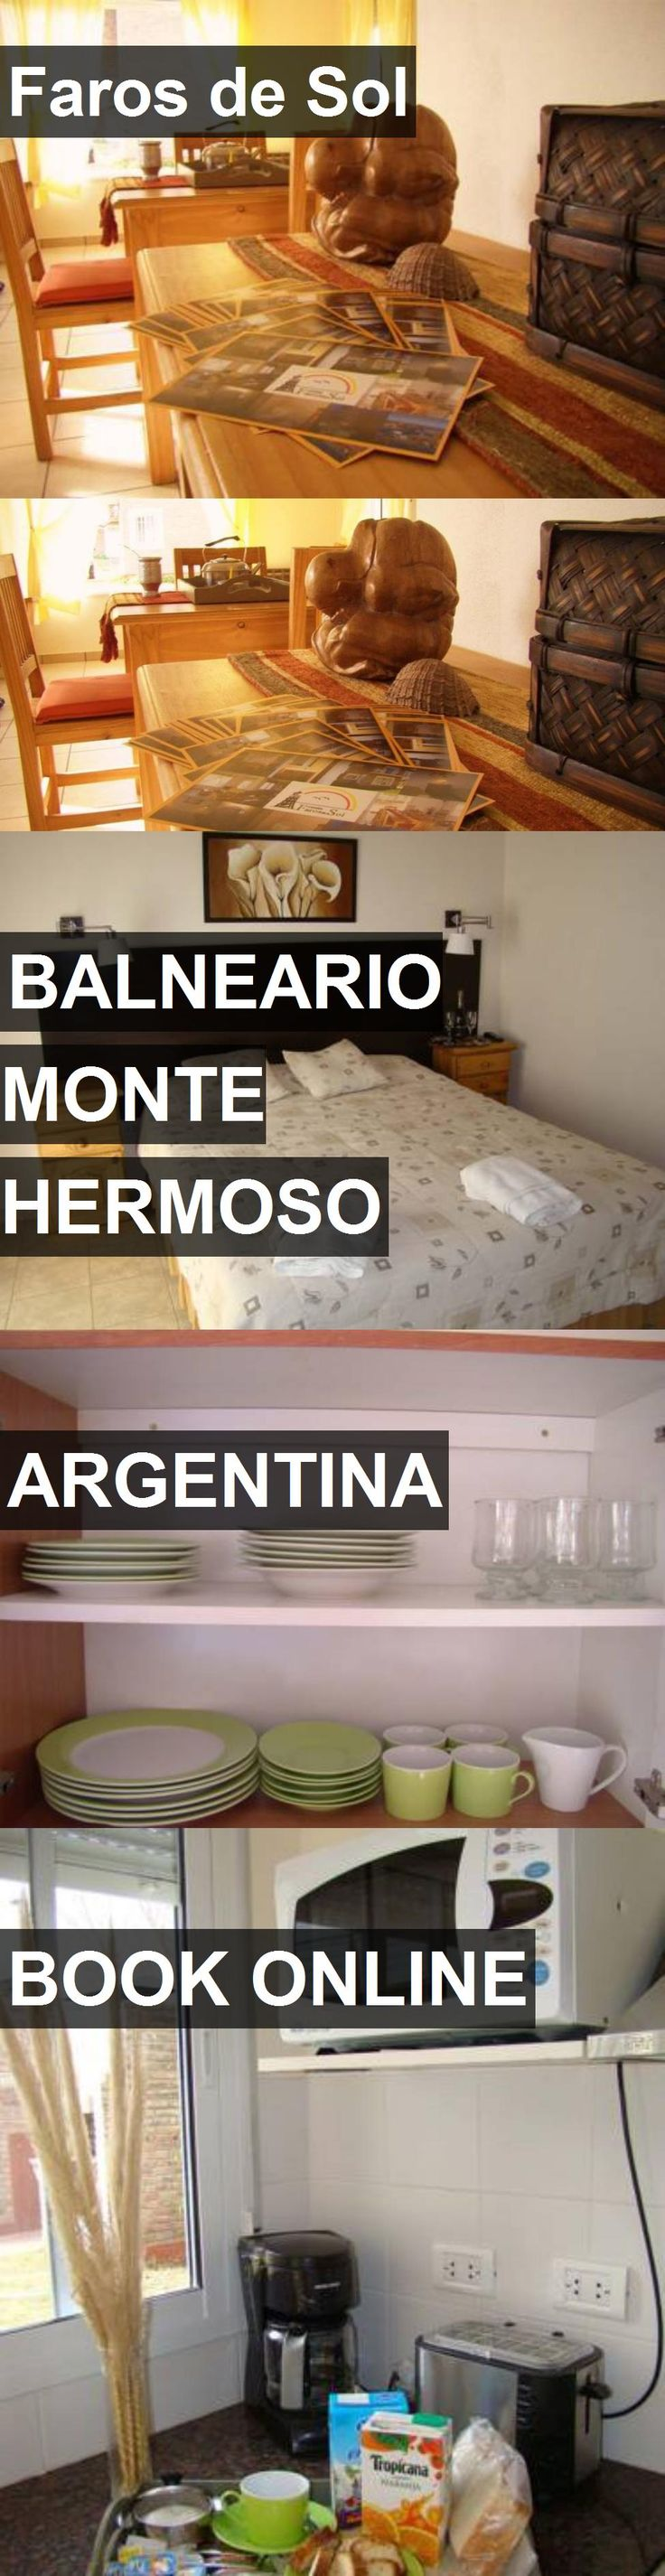 Hotel Faros de Sol in Balneario Monte Hermoso, Argentina. For more information, photos, reviews and best prices please follow the link. #Argentina #BalnearioMonteHermoso #travel #vacation #hotel